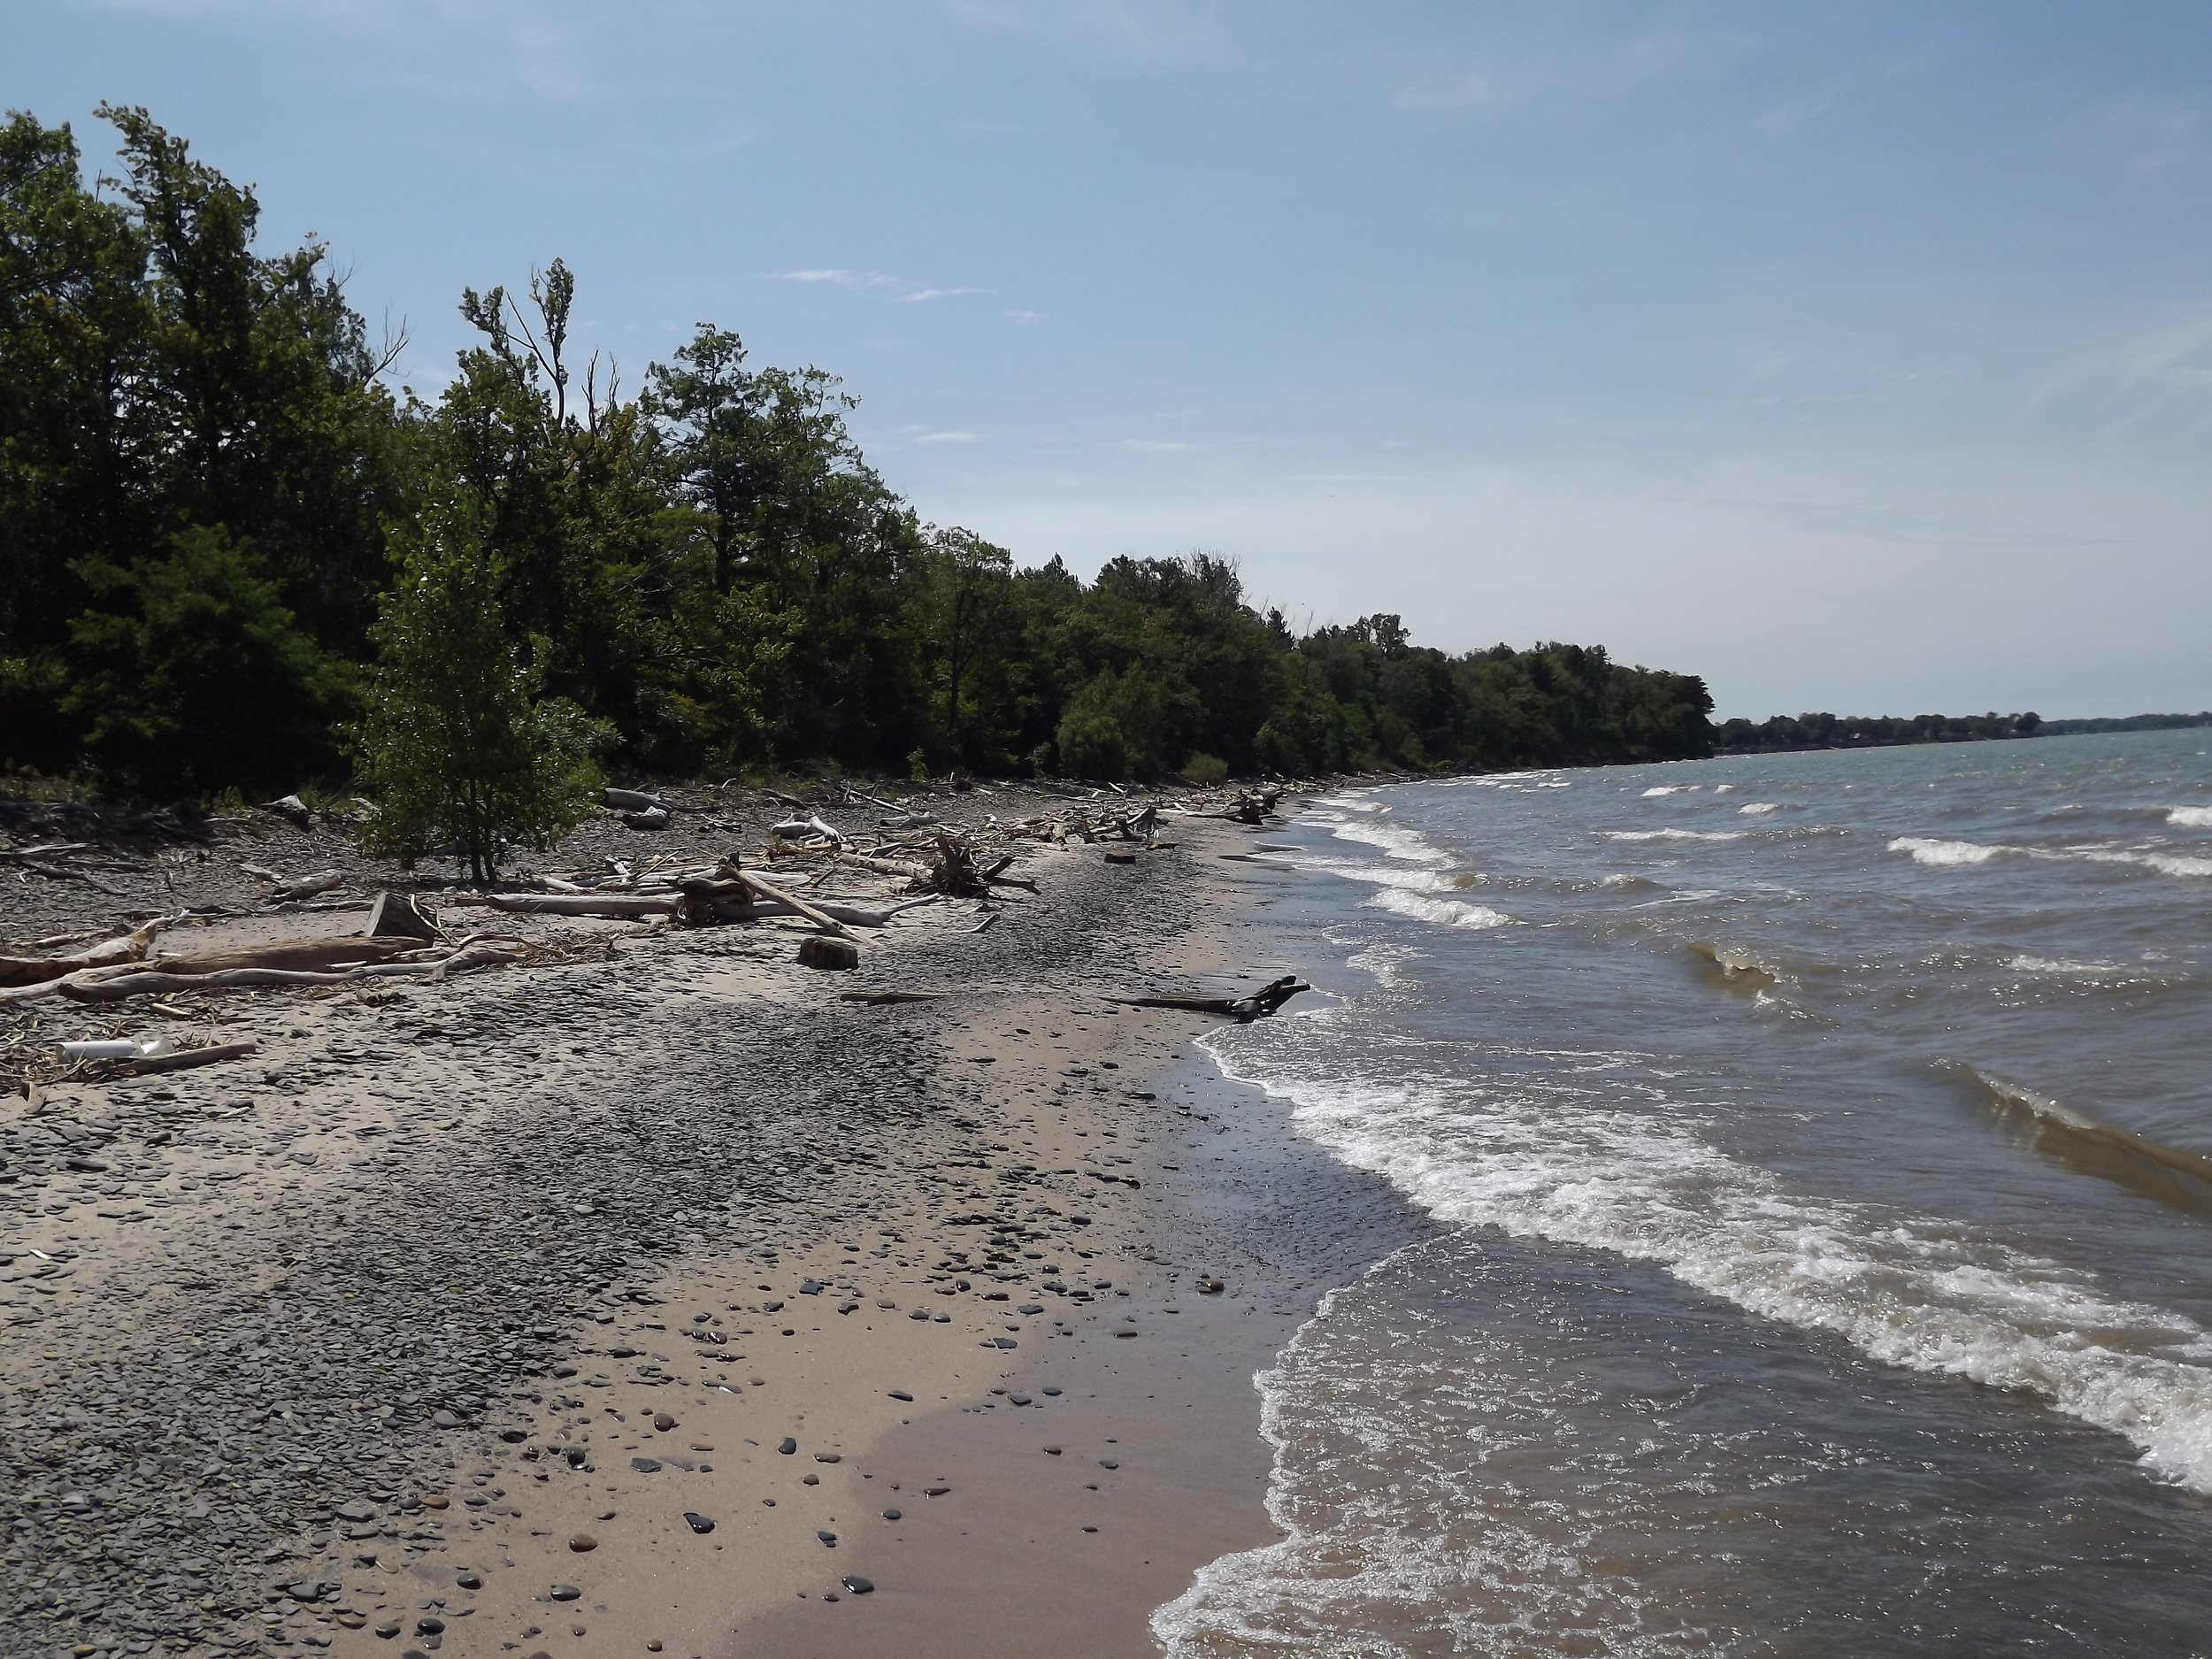 Lake Erie Beach - We had pretty good weather up there for our stay and this particular day was especially sunny. This photo was taken from the mouth of Canadaway Creek and provides a good view of the beach and lake looking to the east.